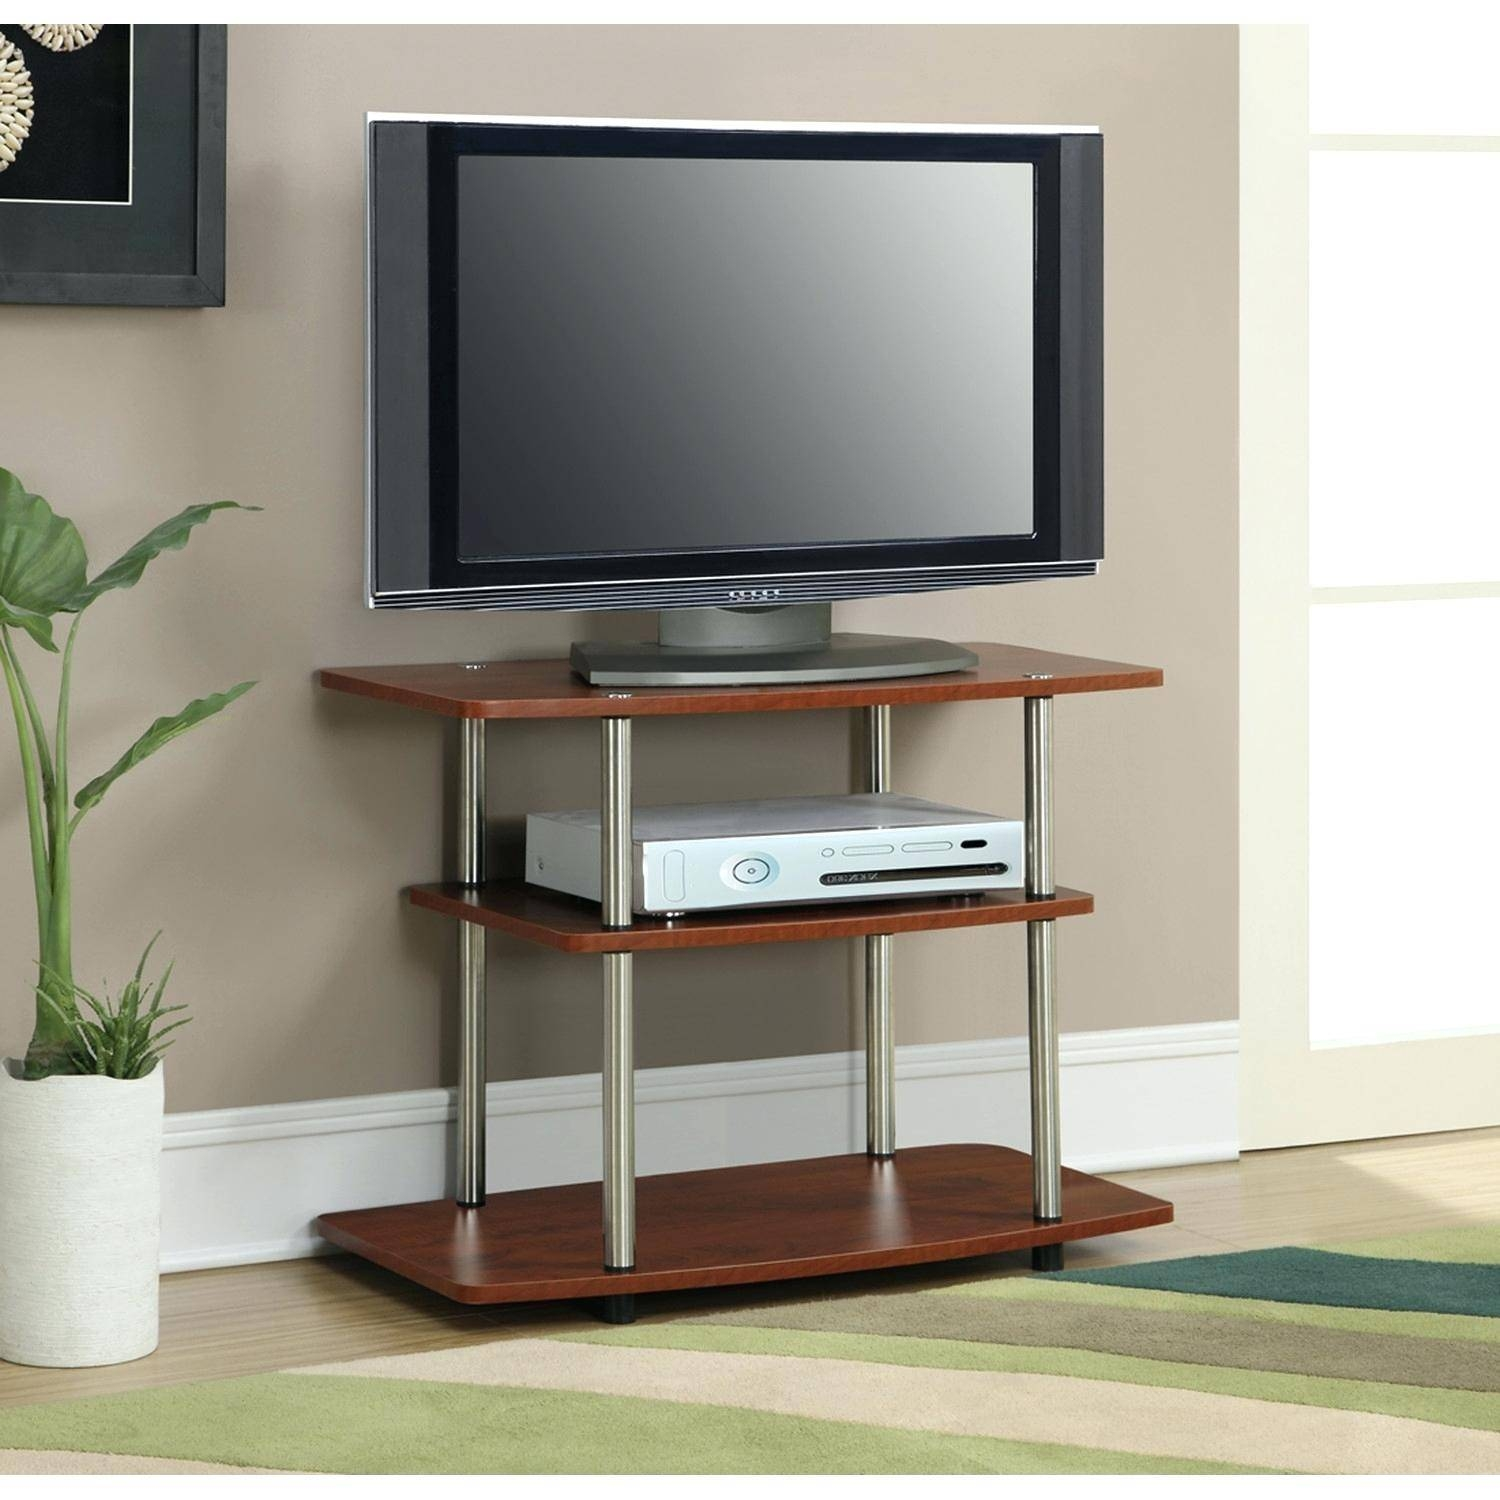 Tv Stand : Outstanding 149 Chrome Easel Tv Stand Beautiful Chrome Pertaining To Trendy Tv Stands (View 6 of 15)